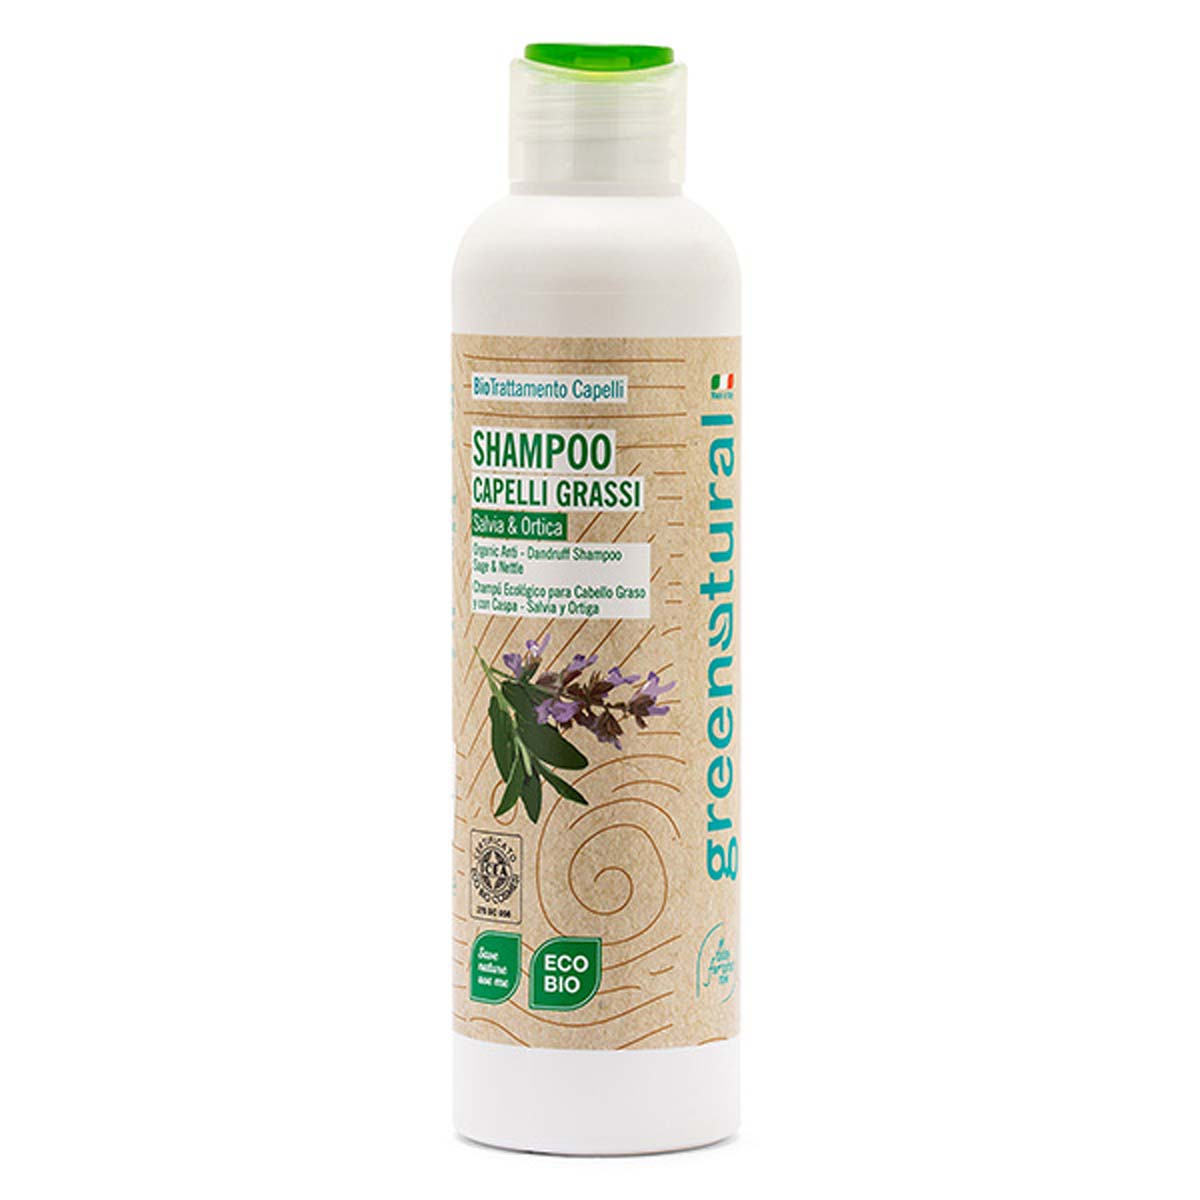 Greenatural – Shampoo Capelli Grassi e con Forfora Salvia & Ortica 250ml